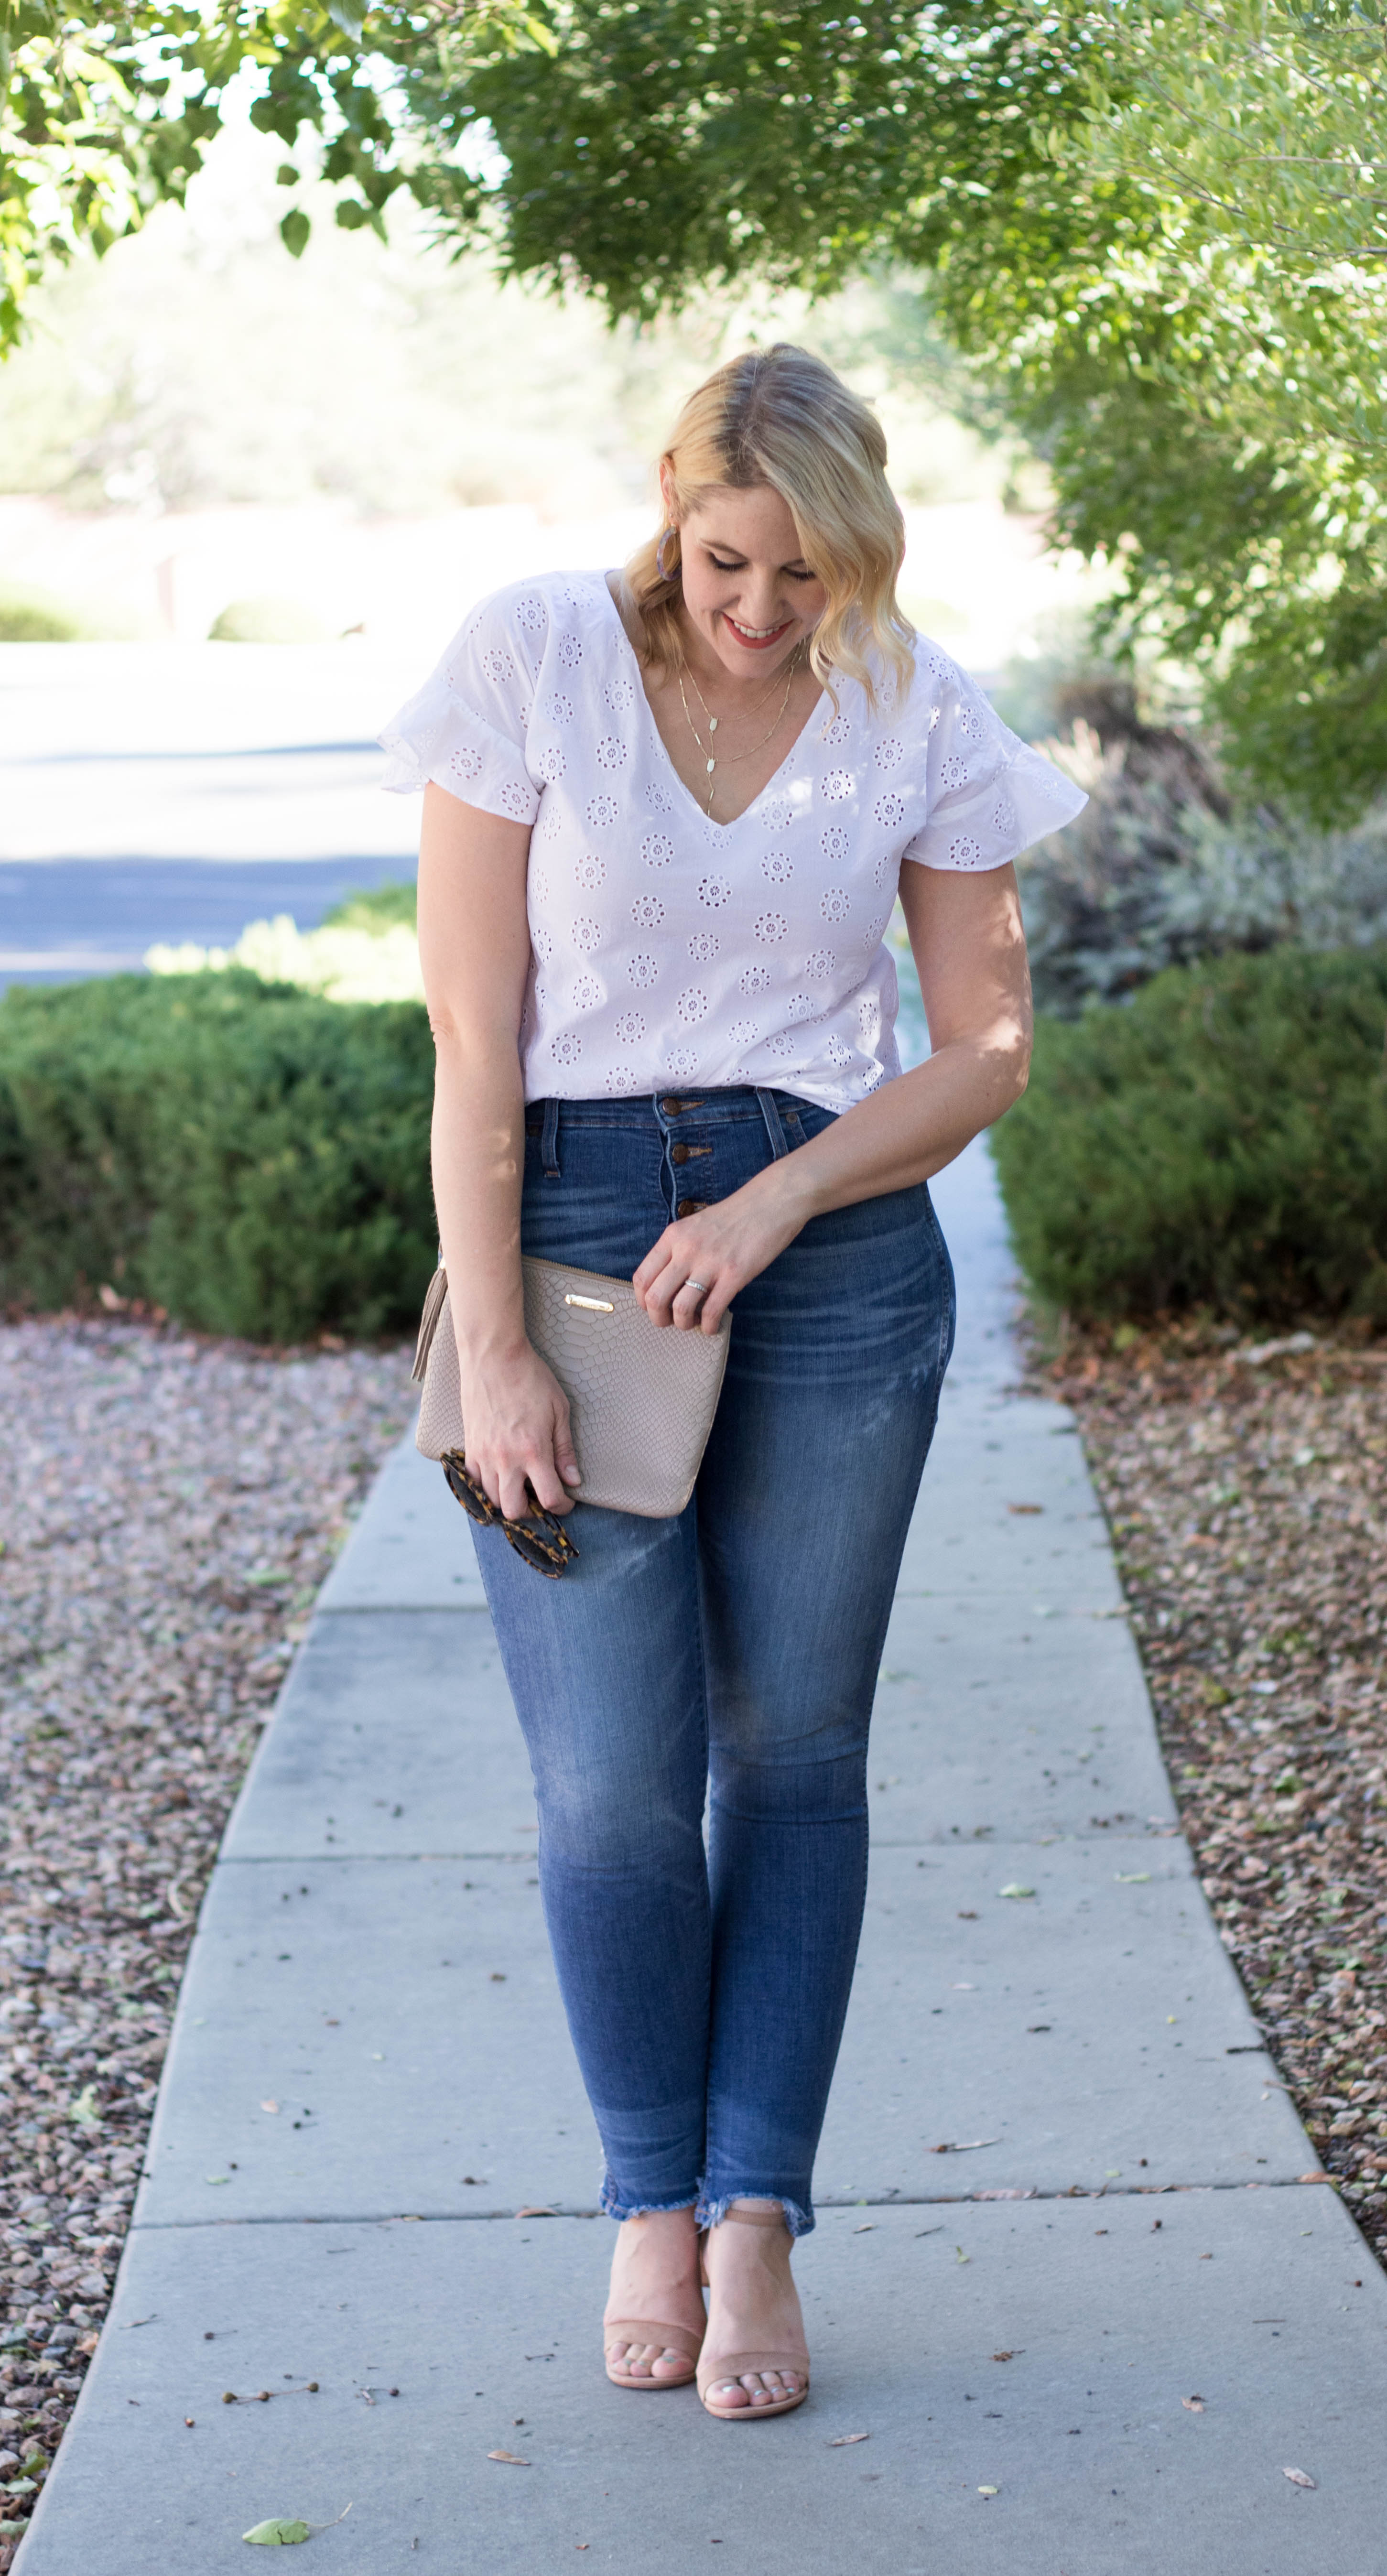 madewell top and jeans outfit #madewell #madewelljeans #curvyfashion